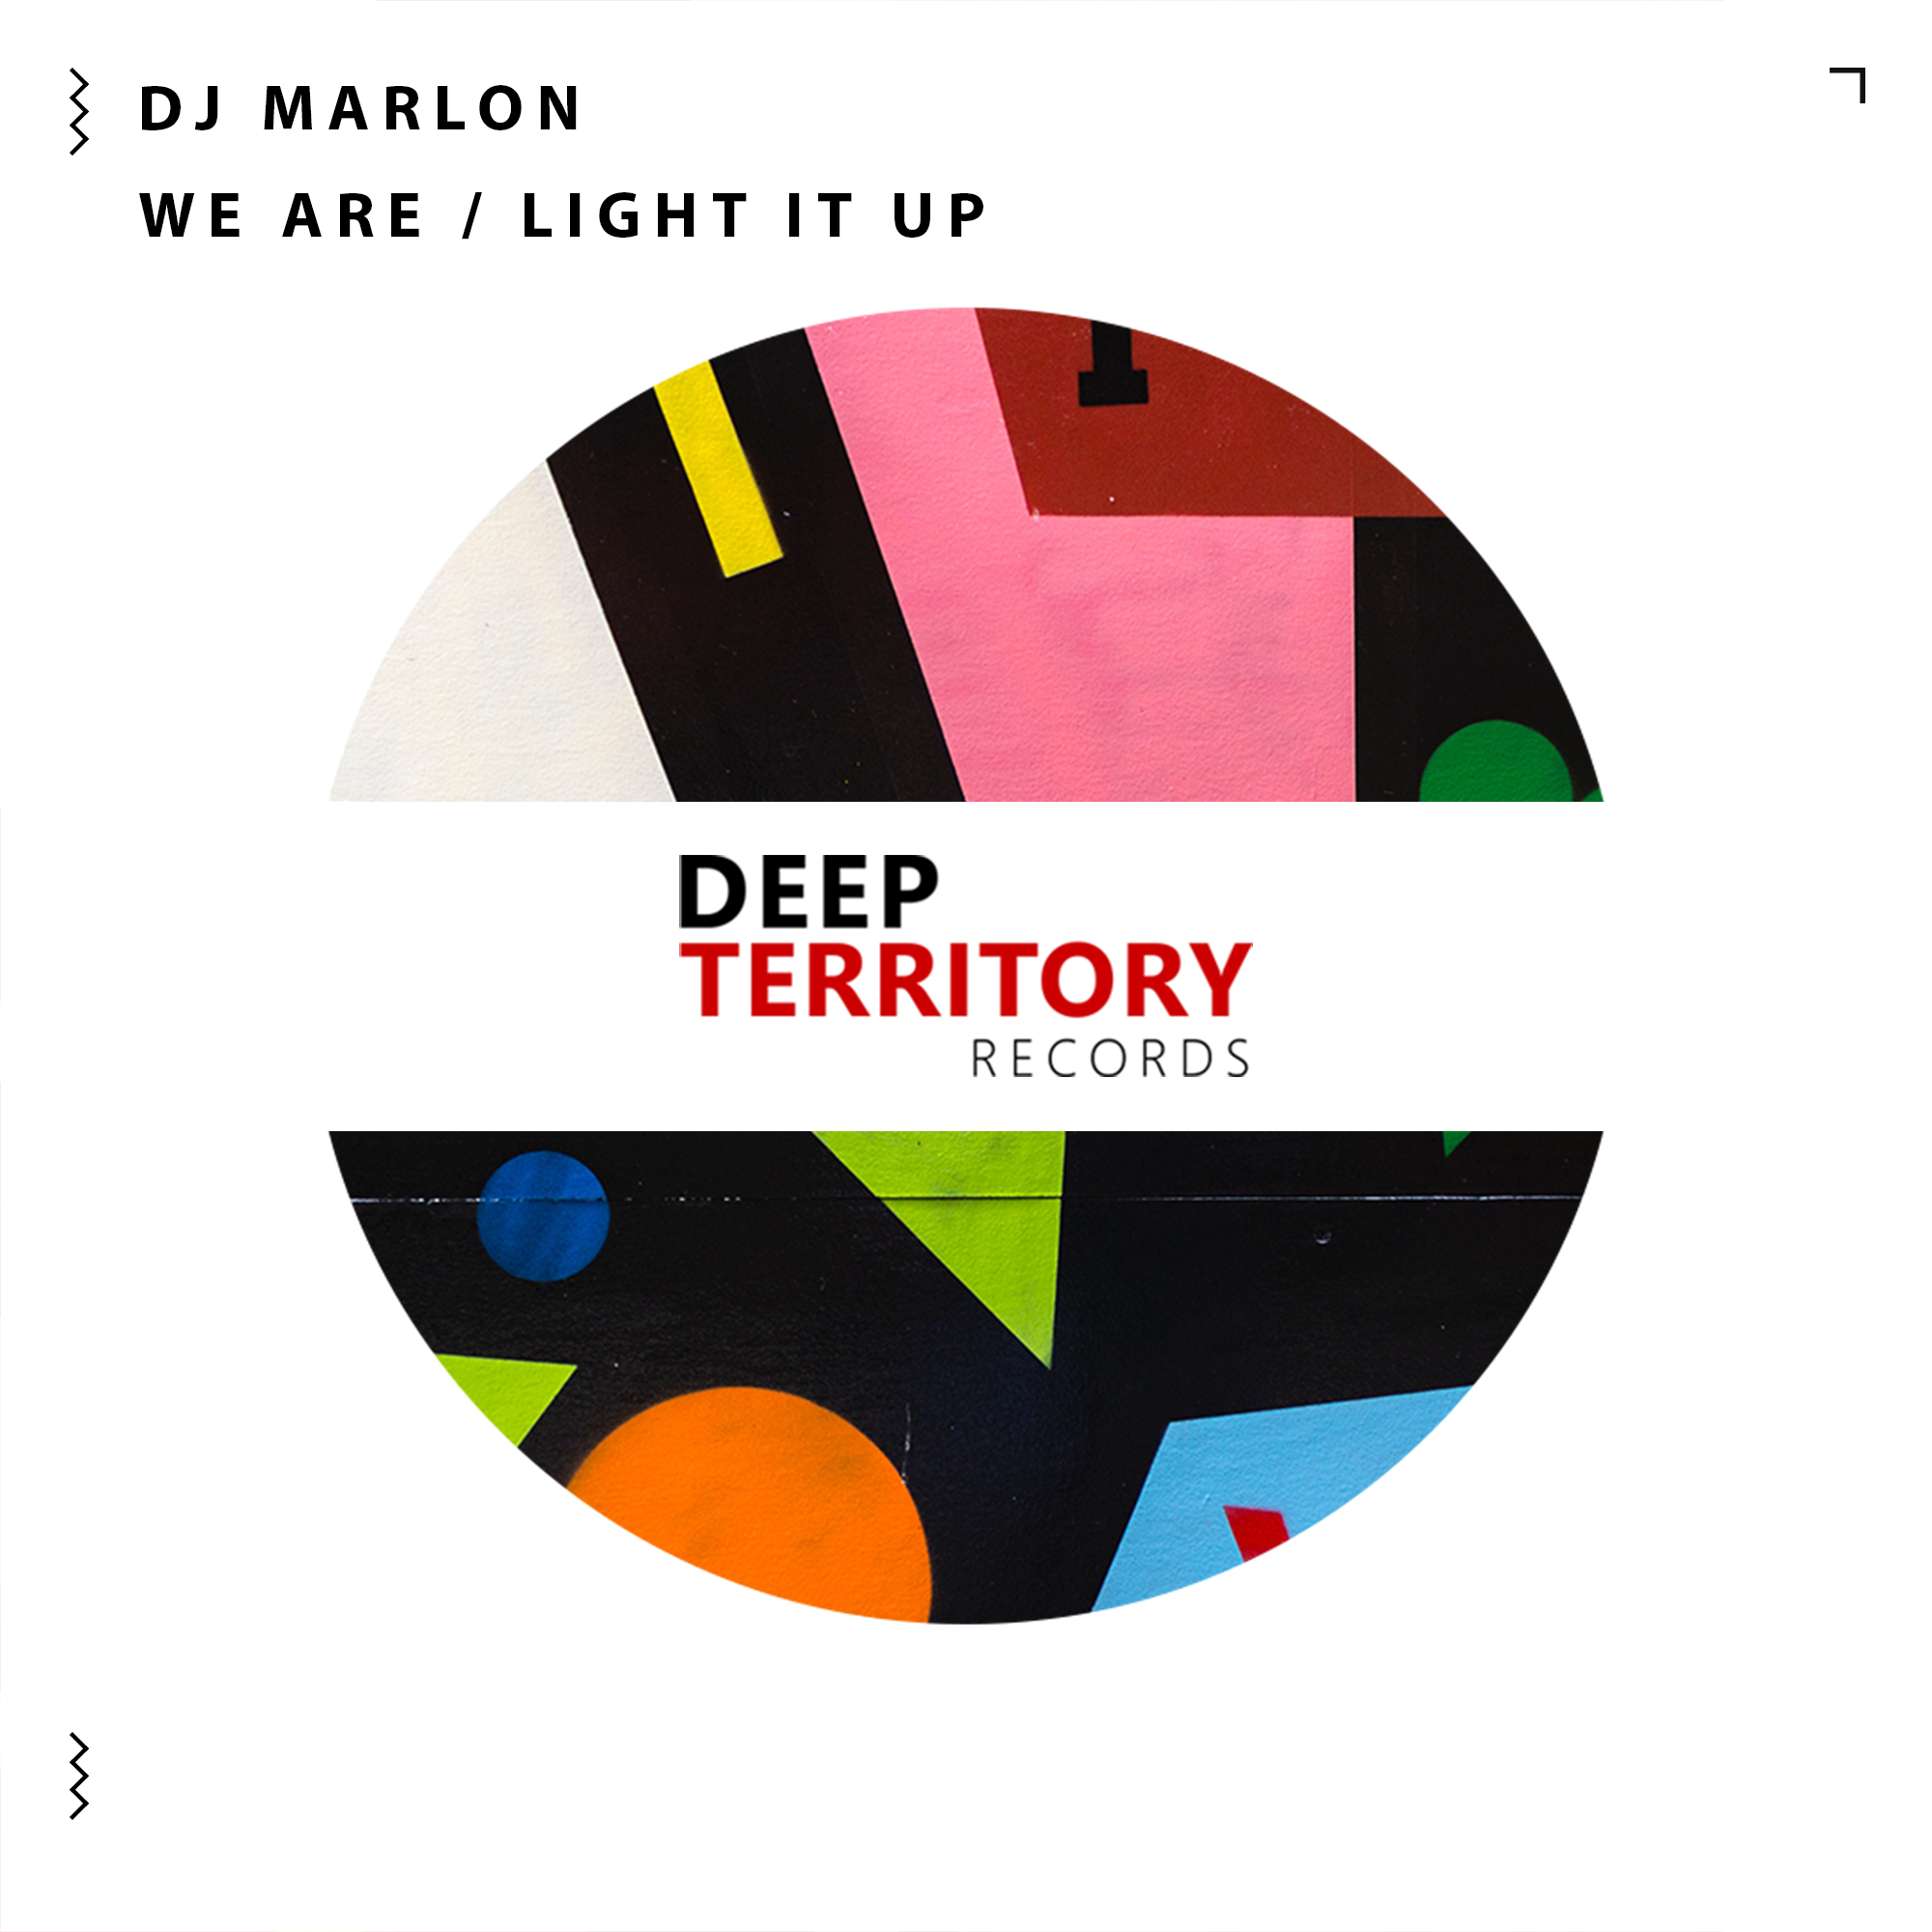 djmarlon light it up